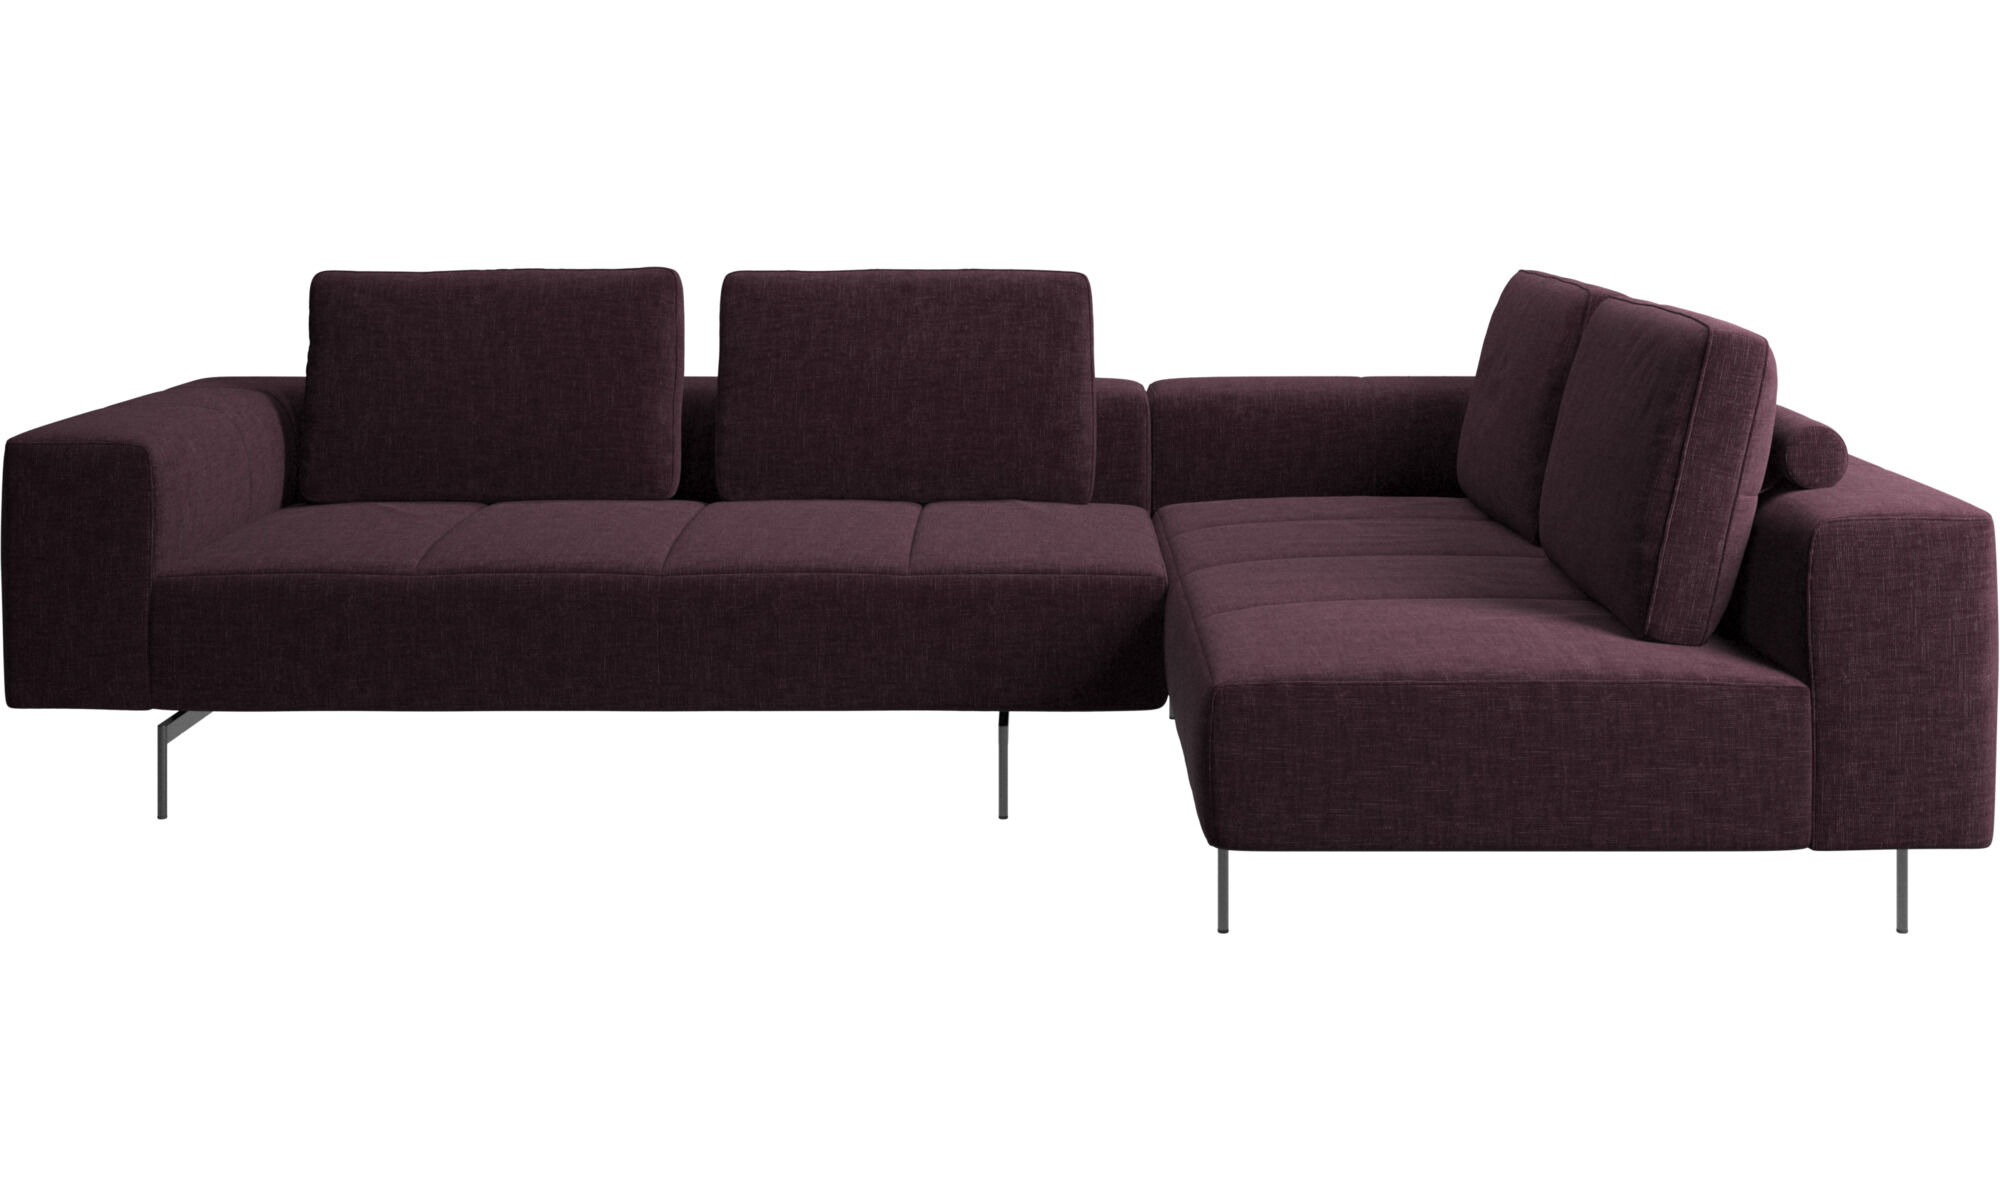 Wohnzimmer Rotes Sofa Rote Sofas Boconcept